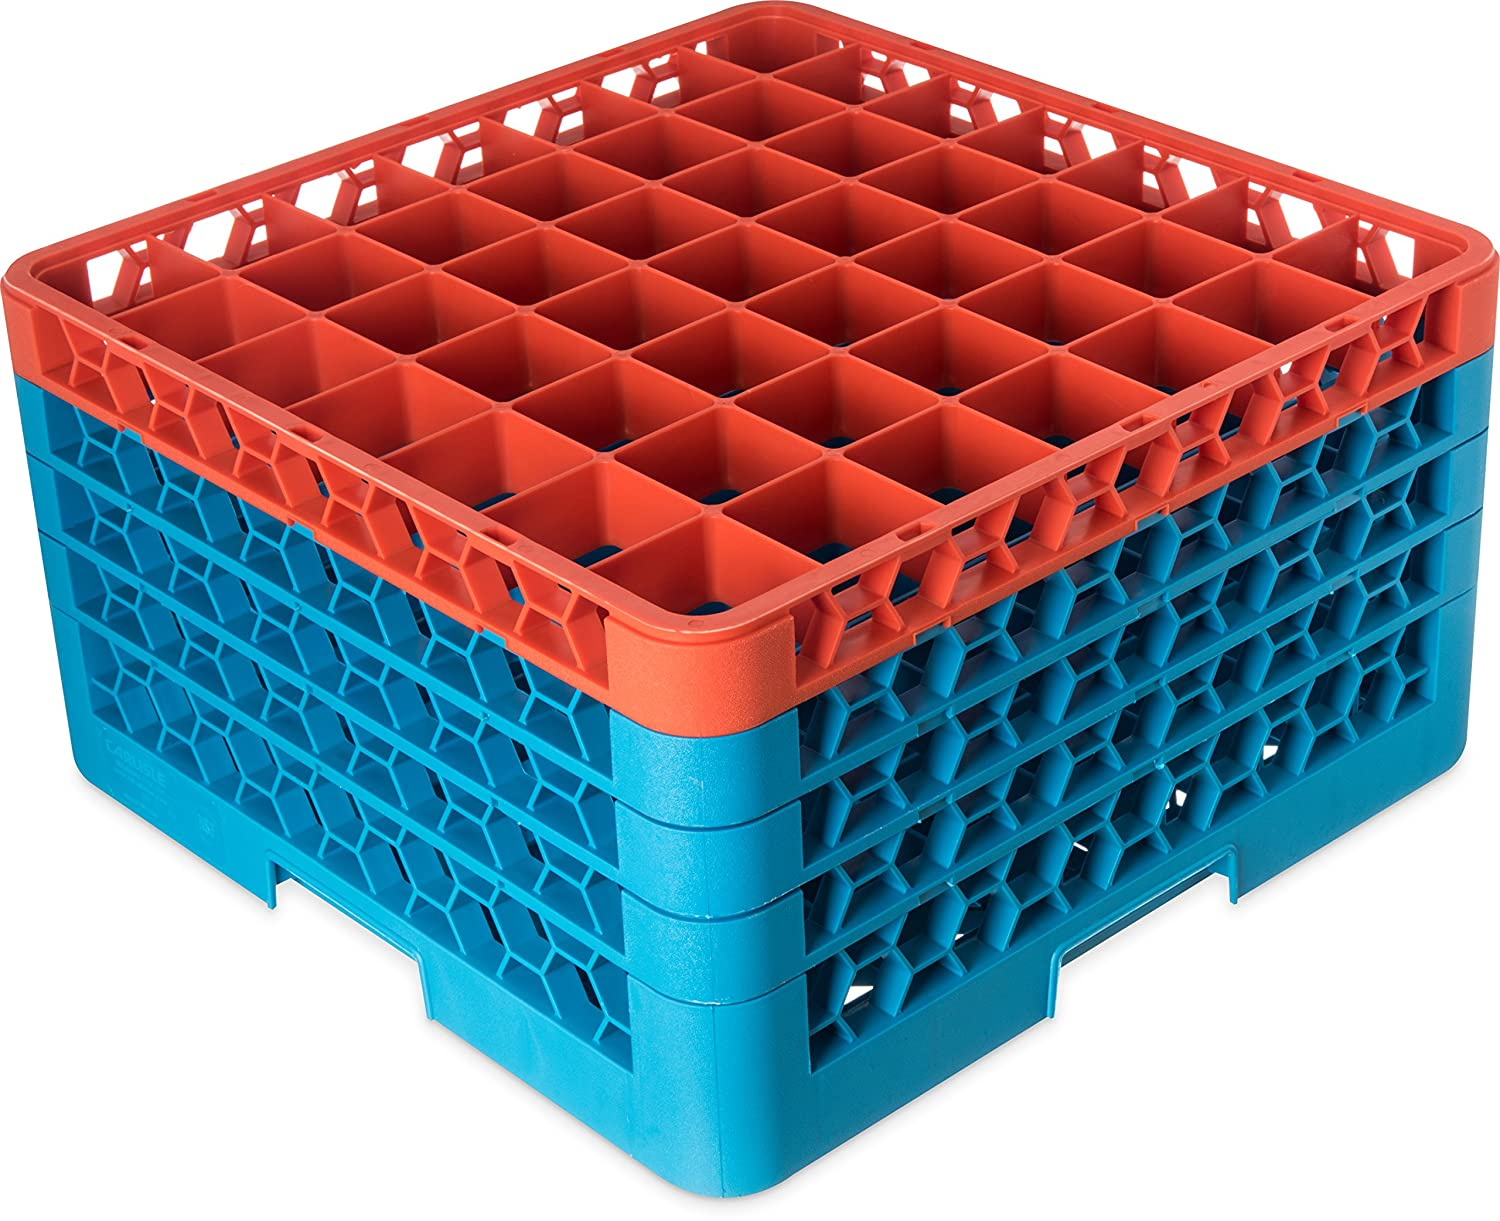 Pack of 2 Carlisle RG49-4C414 OptiClean 49 Compartment Glass Rack with 4 Extenders 10.3 Lavender-Carlisle Blue